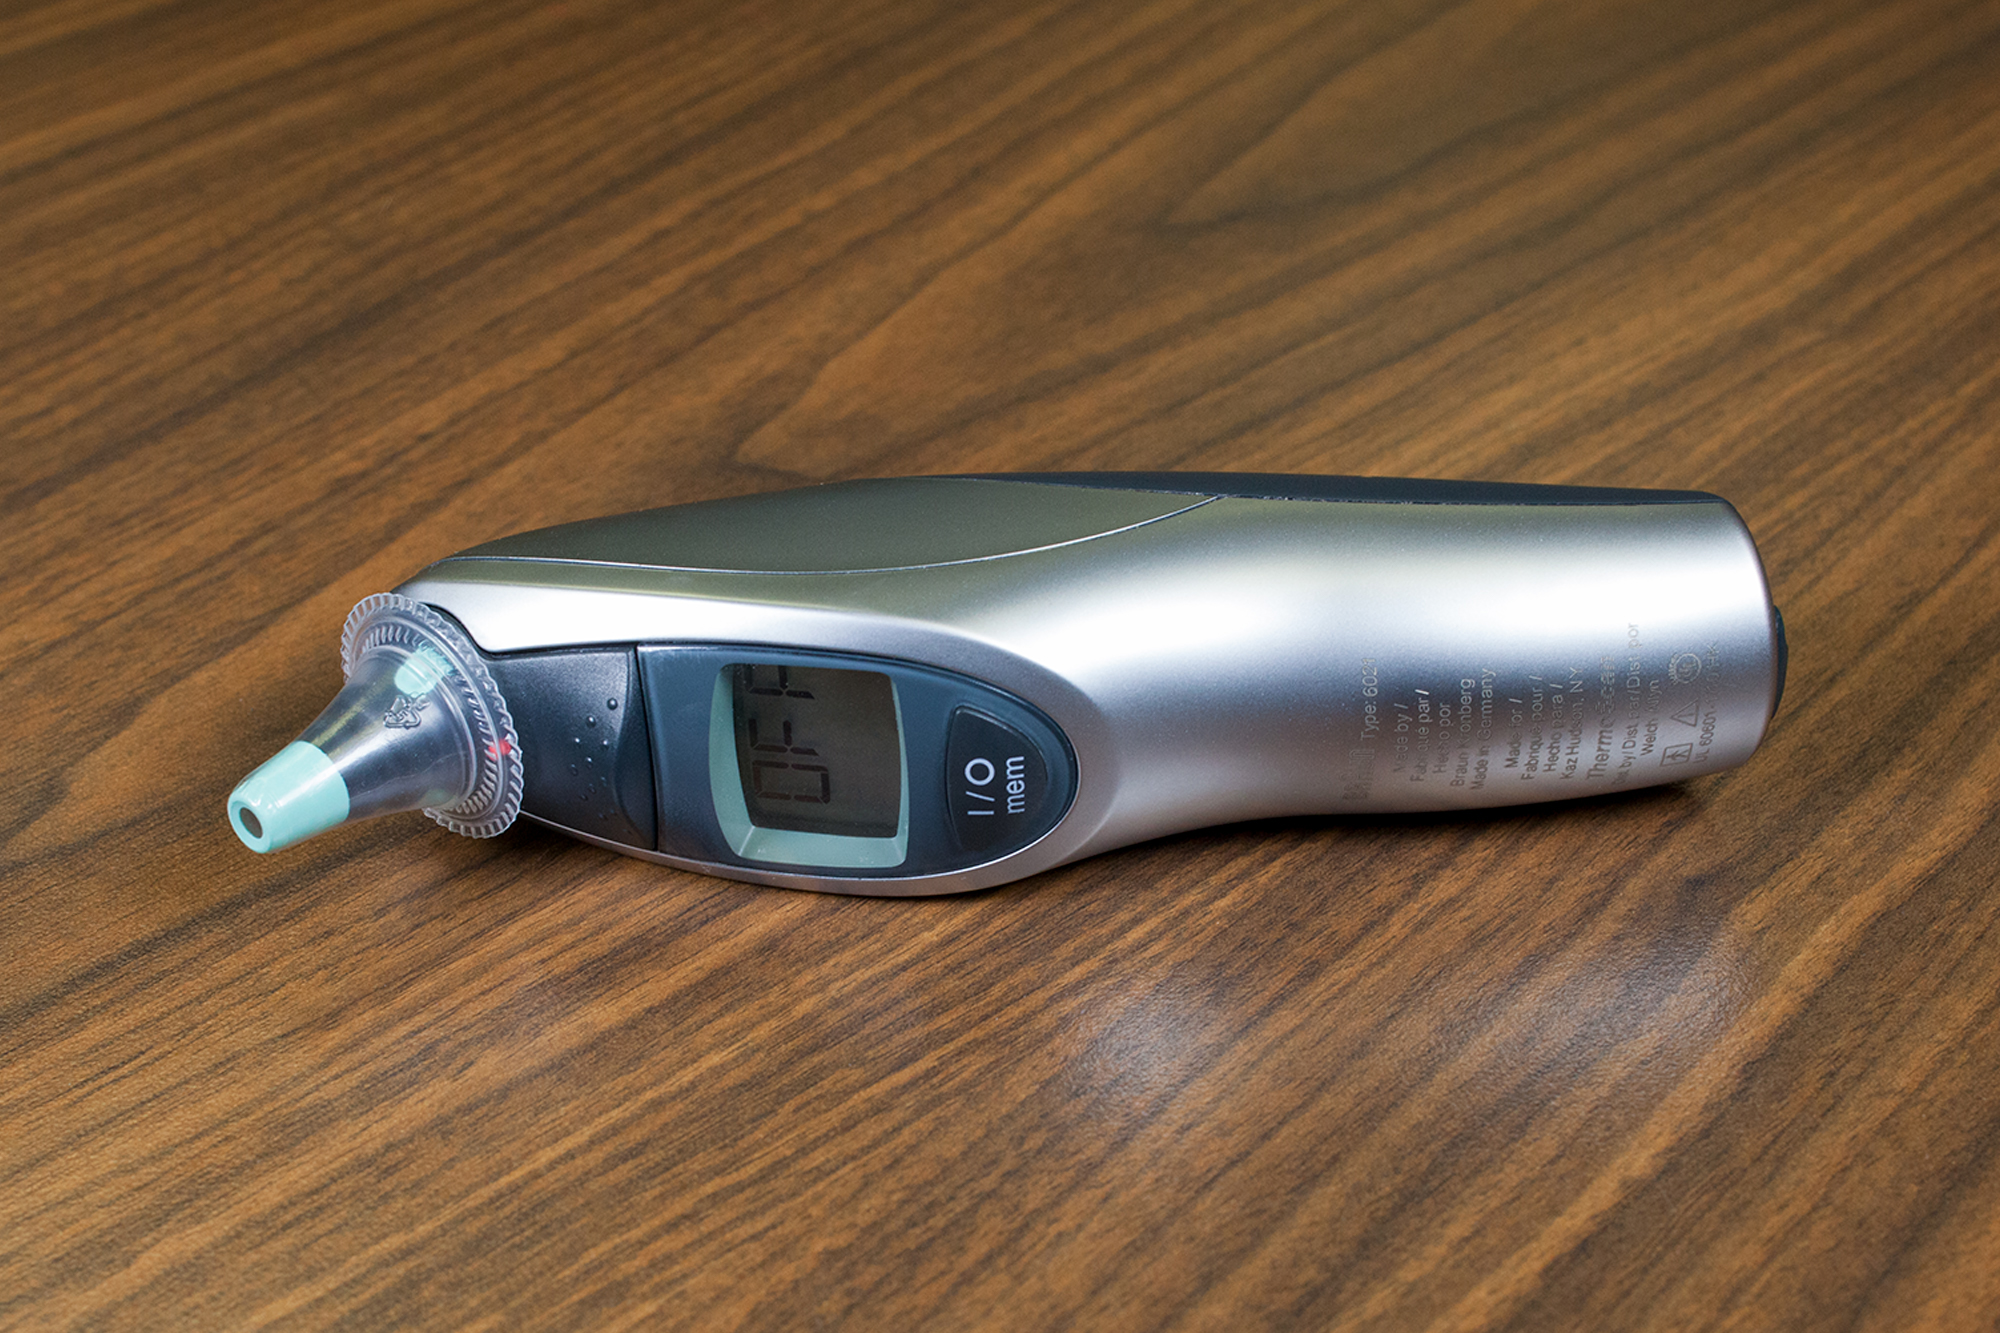 A tympanic thermometer with probe cover on